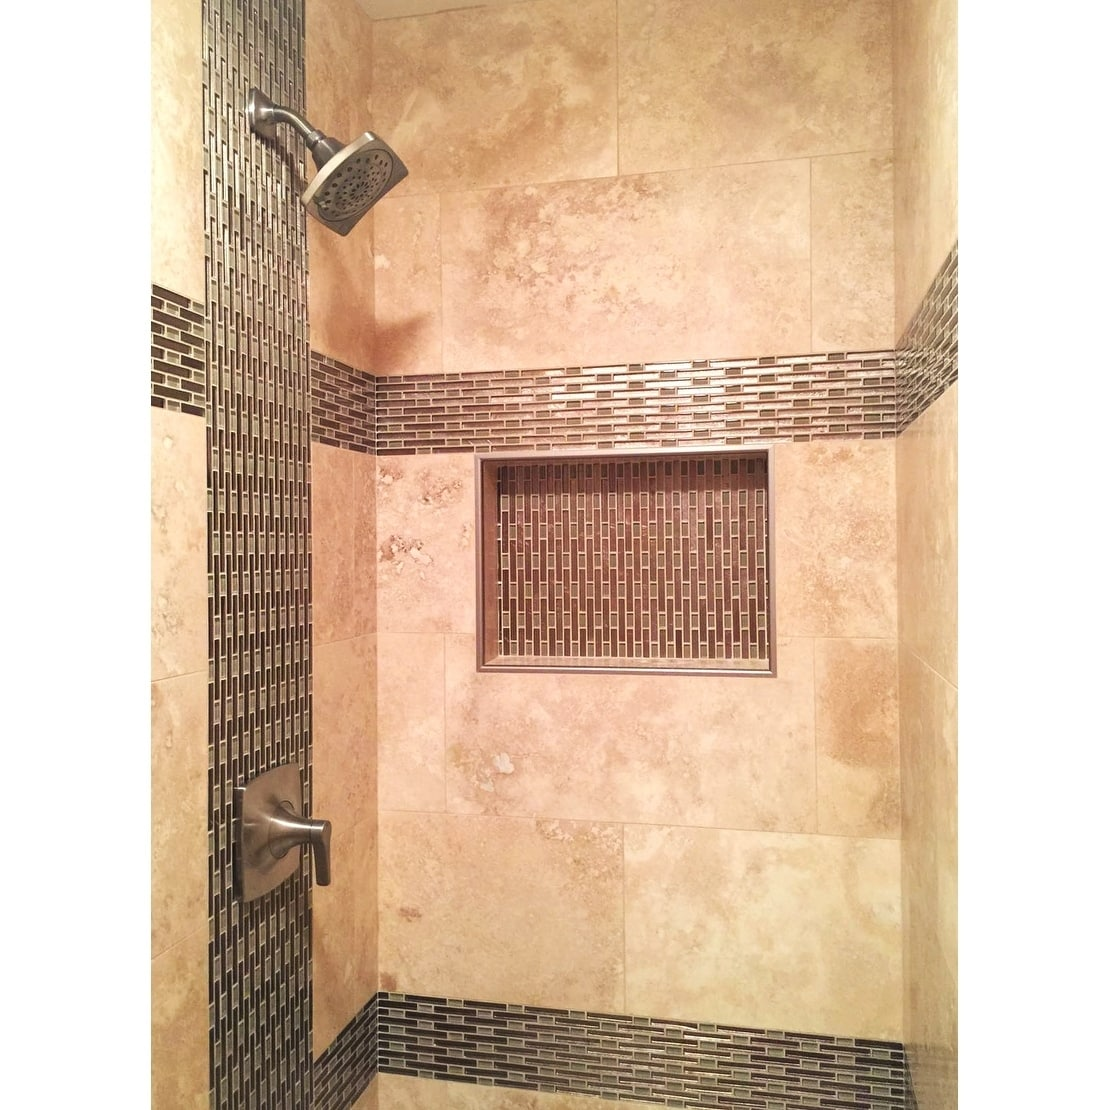 ready for tile leak proof 17 x 25 rectangular bathroom recessed shower shelf shower niche storage for shampoo and toiletry